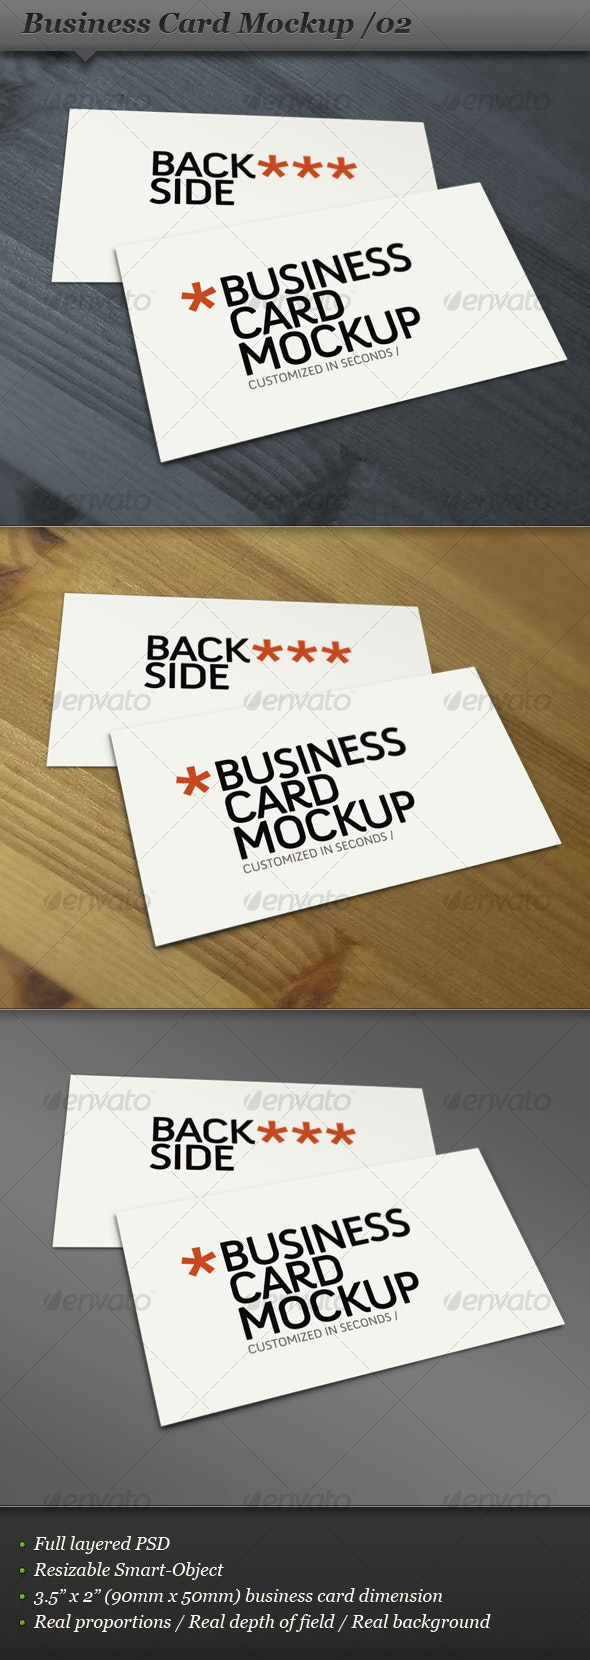 Business card mockup display - Smart template 02 - Business Cards Print